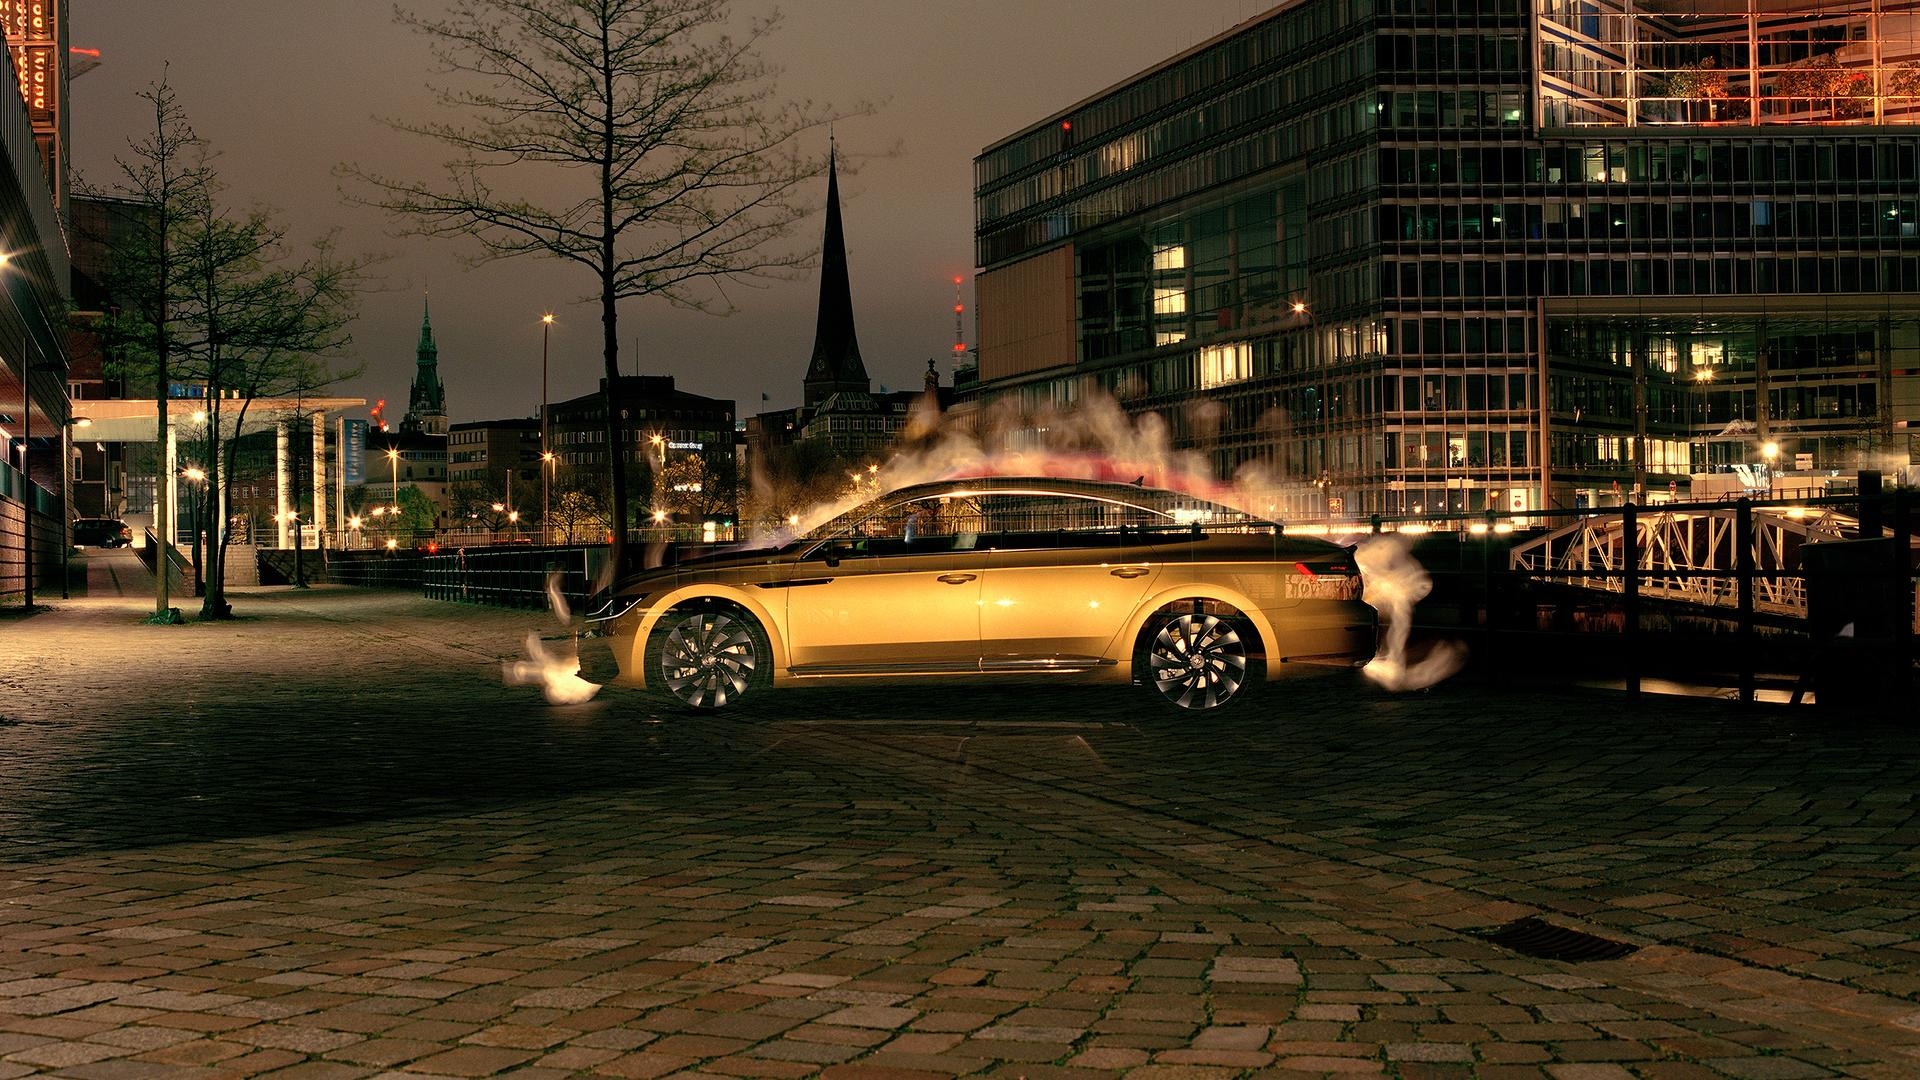 Volkswagen_Arteon_photoshoot_by_Pete_Eckert_03